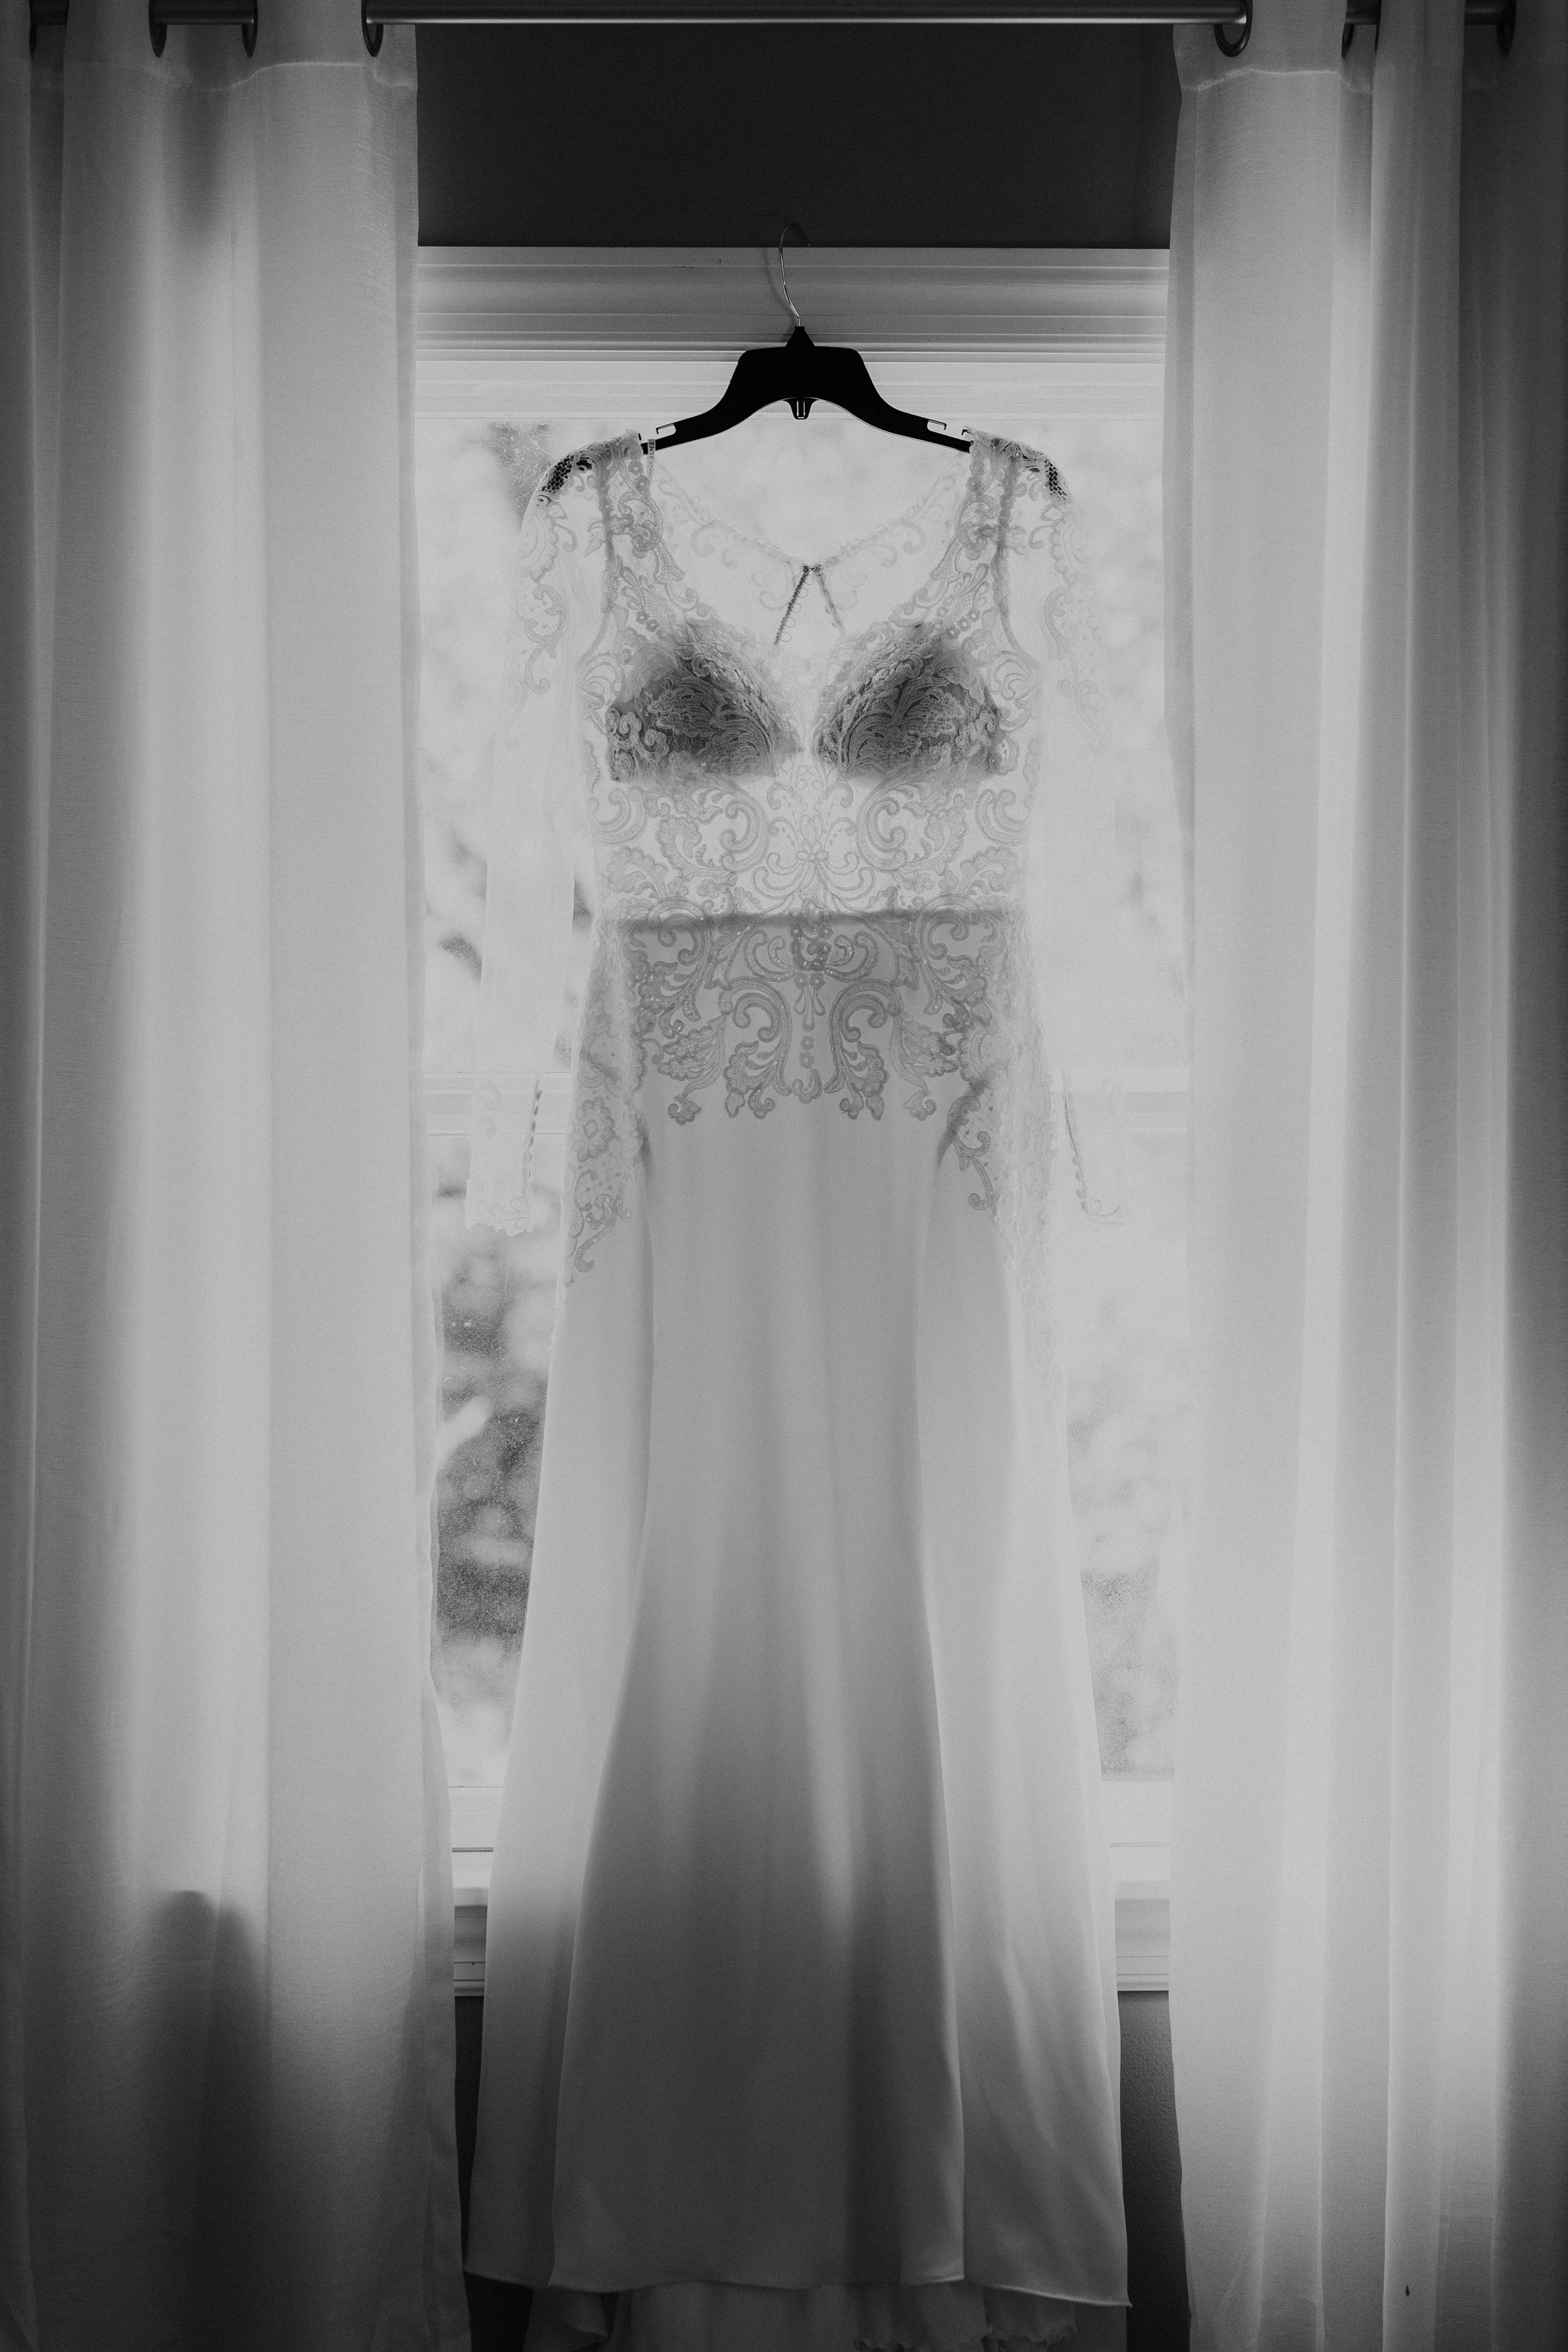 Simple Lace Wedding Dress - Dara's Garden Knoxville East Tennessee Wedding — The Overwhelmed Bride Wedding Blog